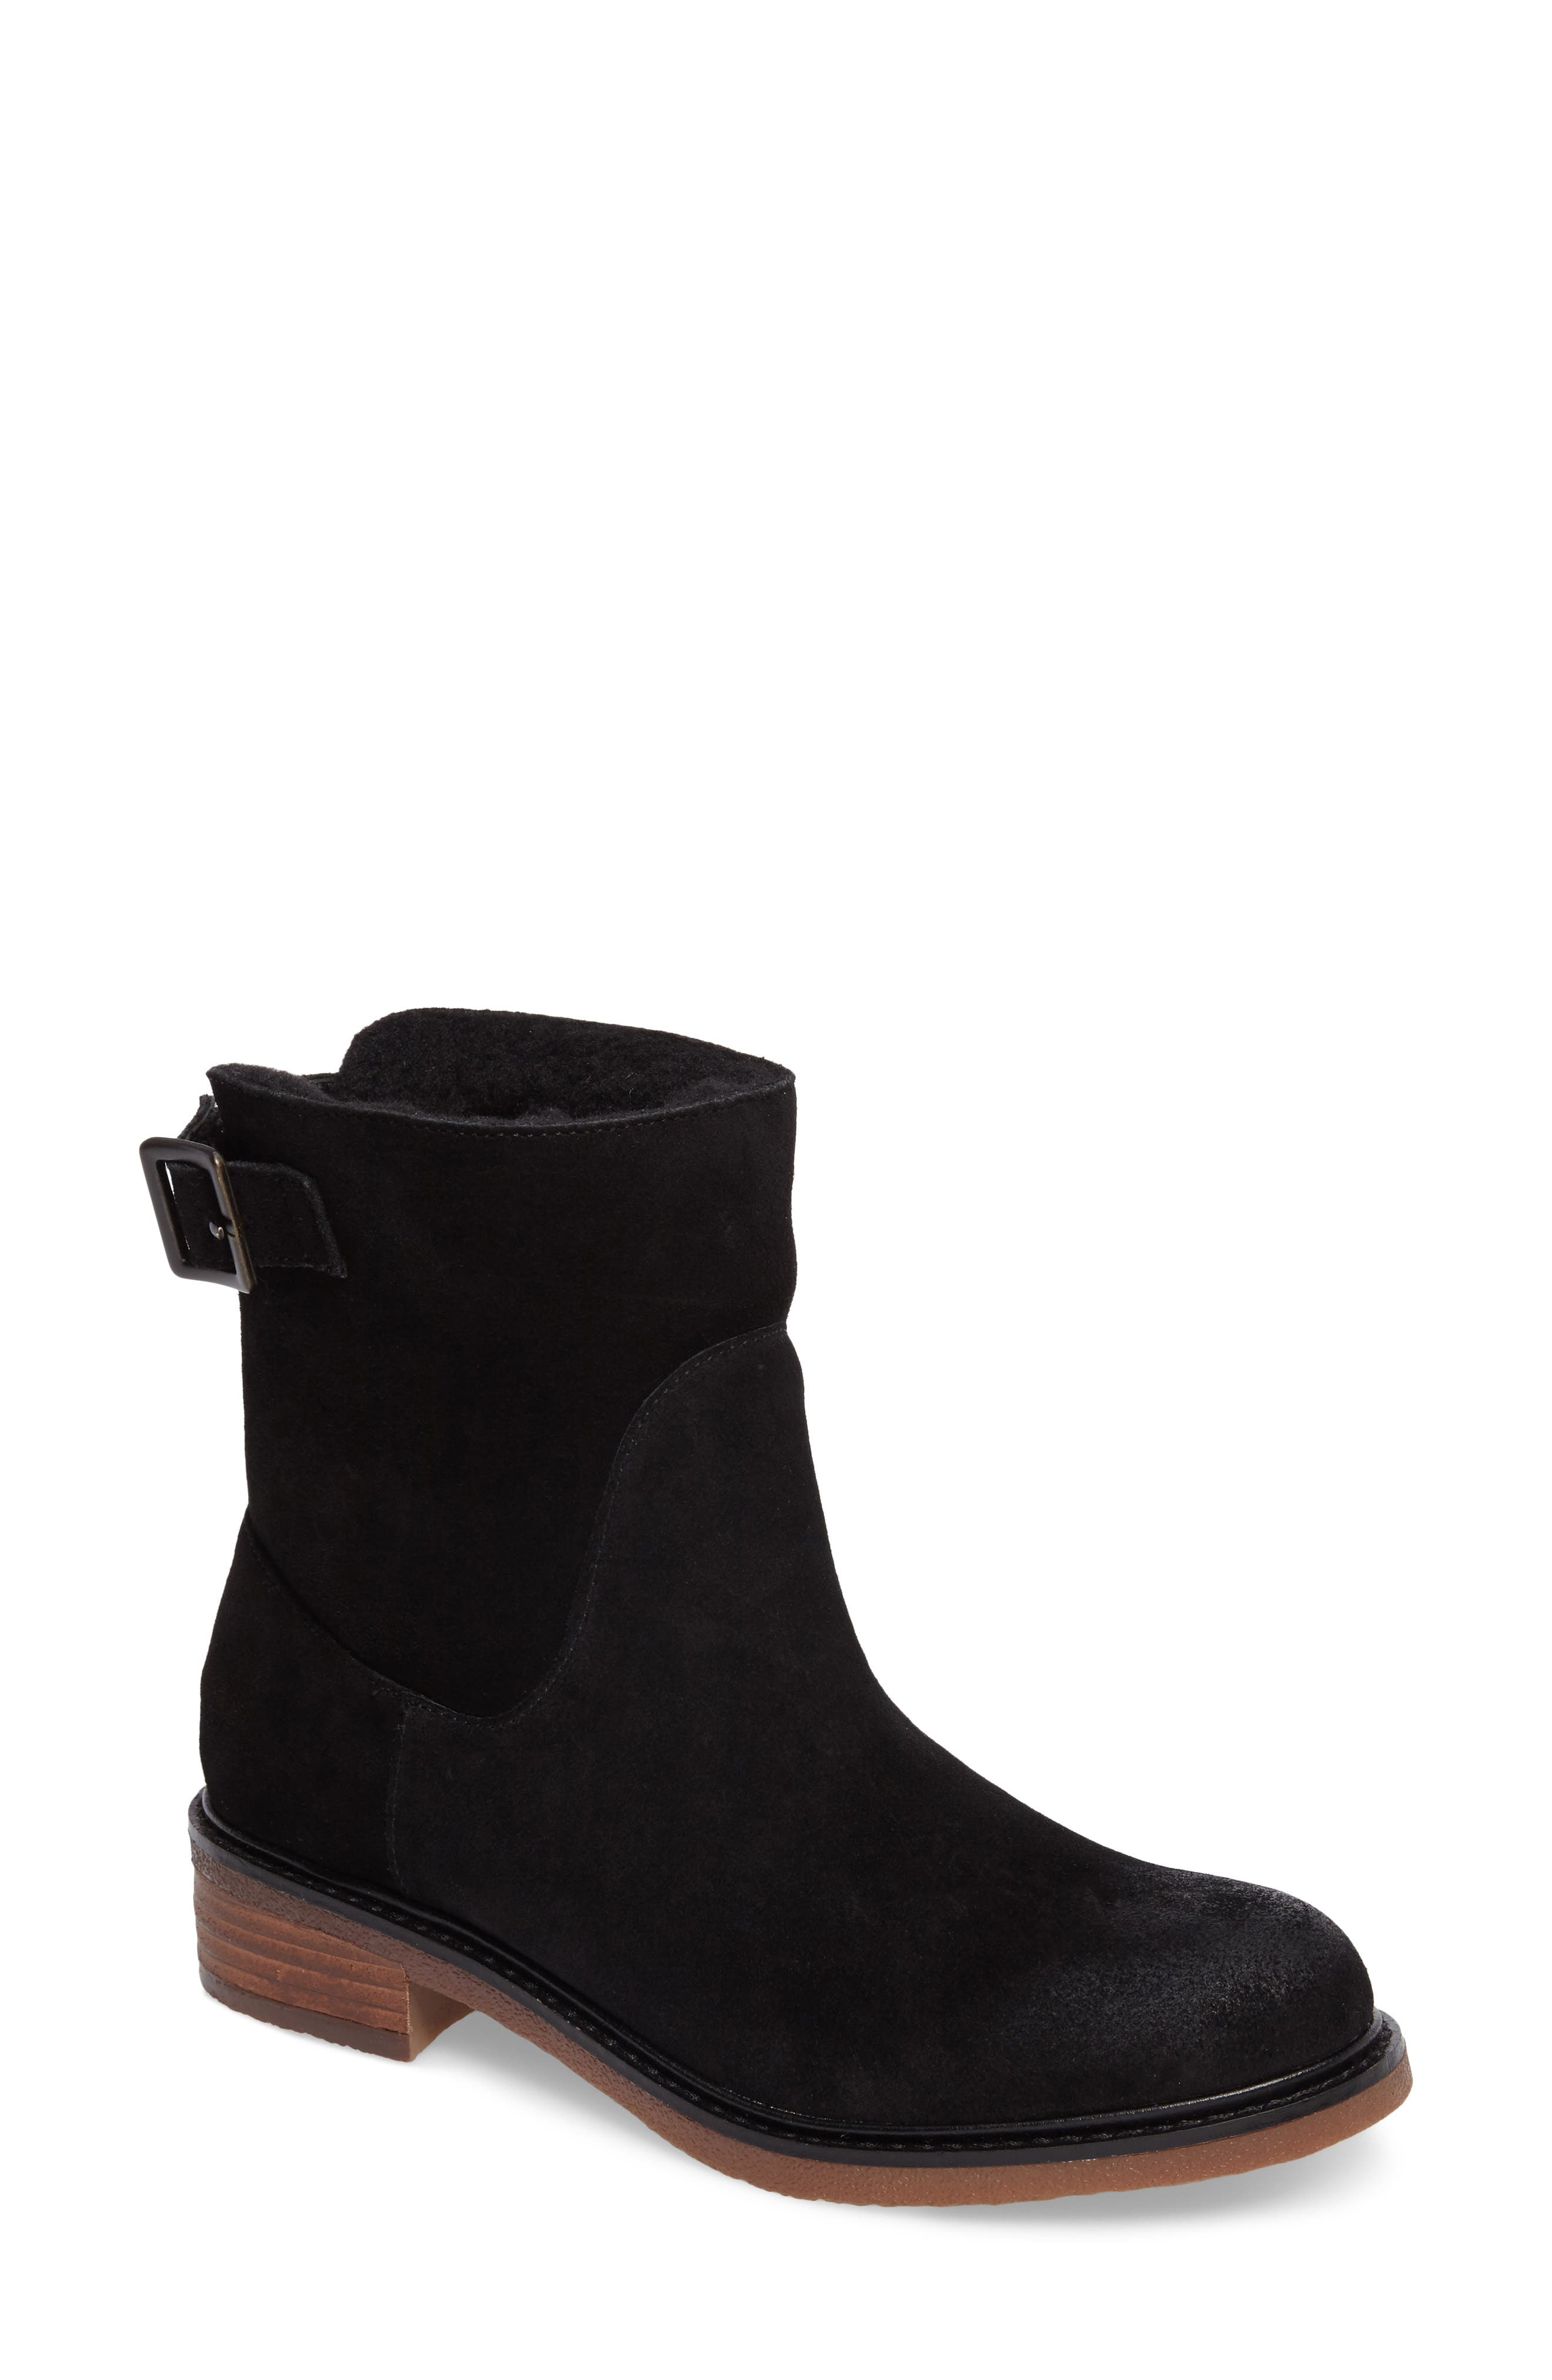 Clay Bootie,                             Main thumbnail 1, color,                             001